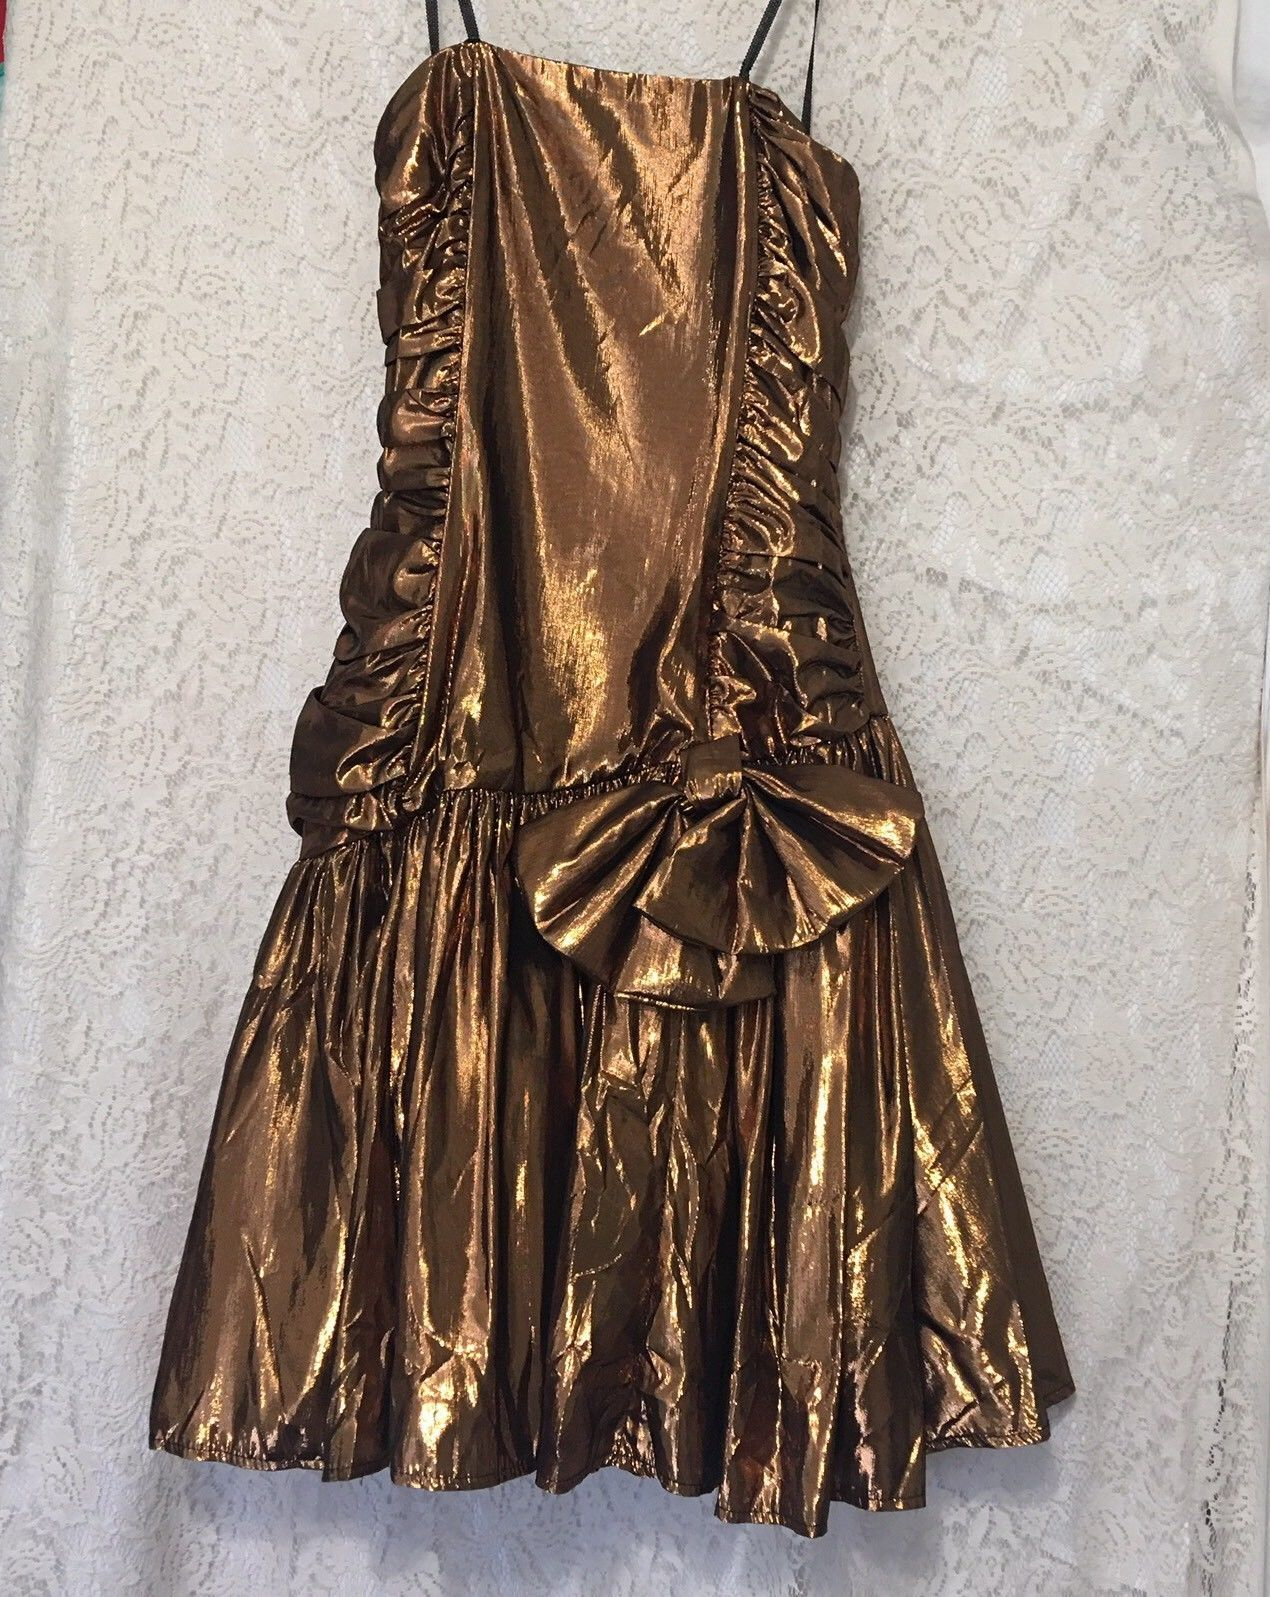 Awesome awesome vtg metallic copper bronze s prom dress halloween